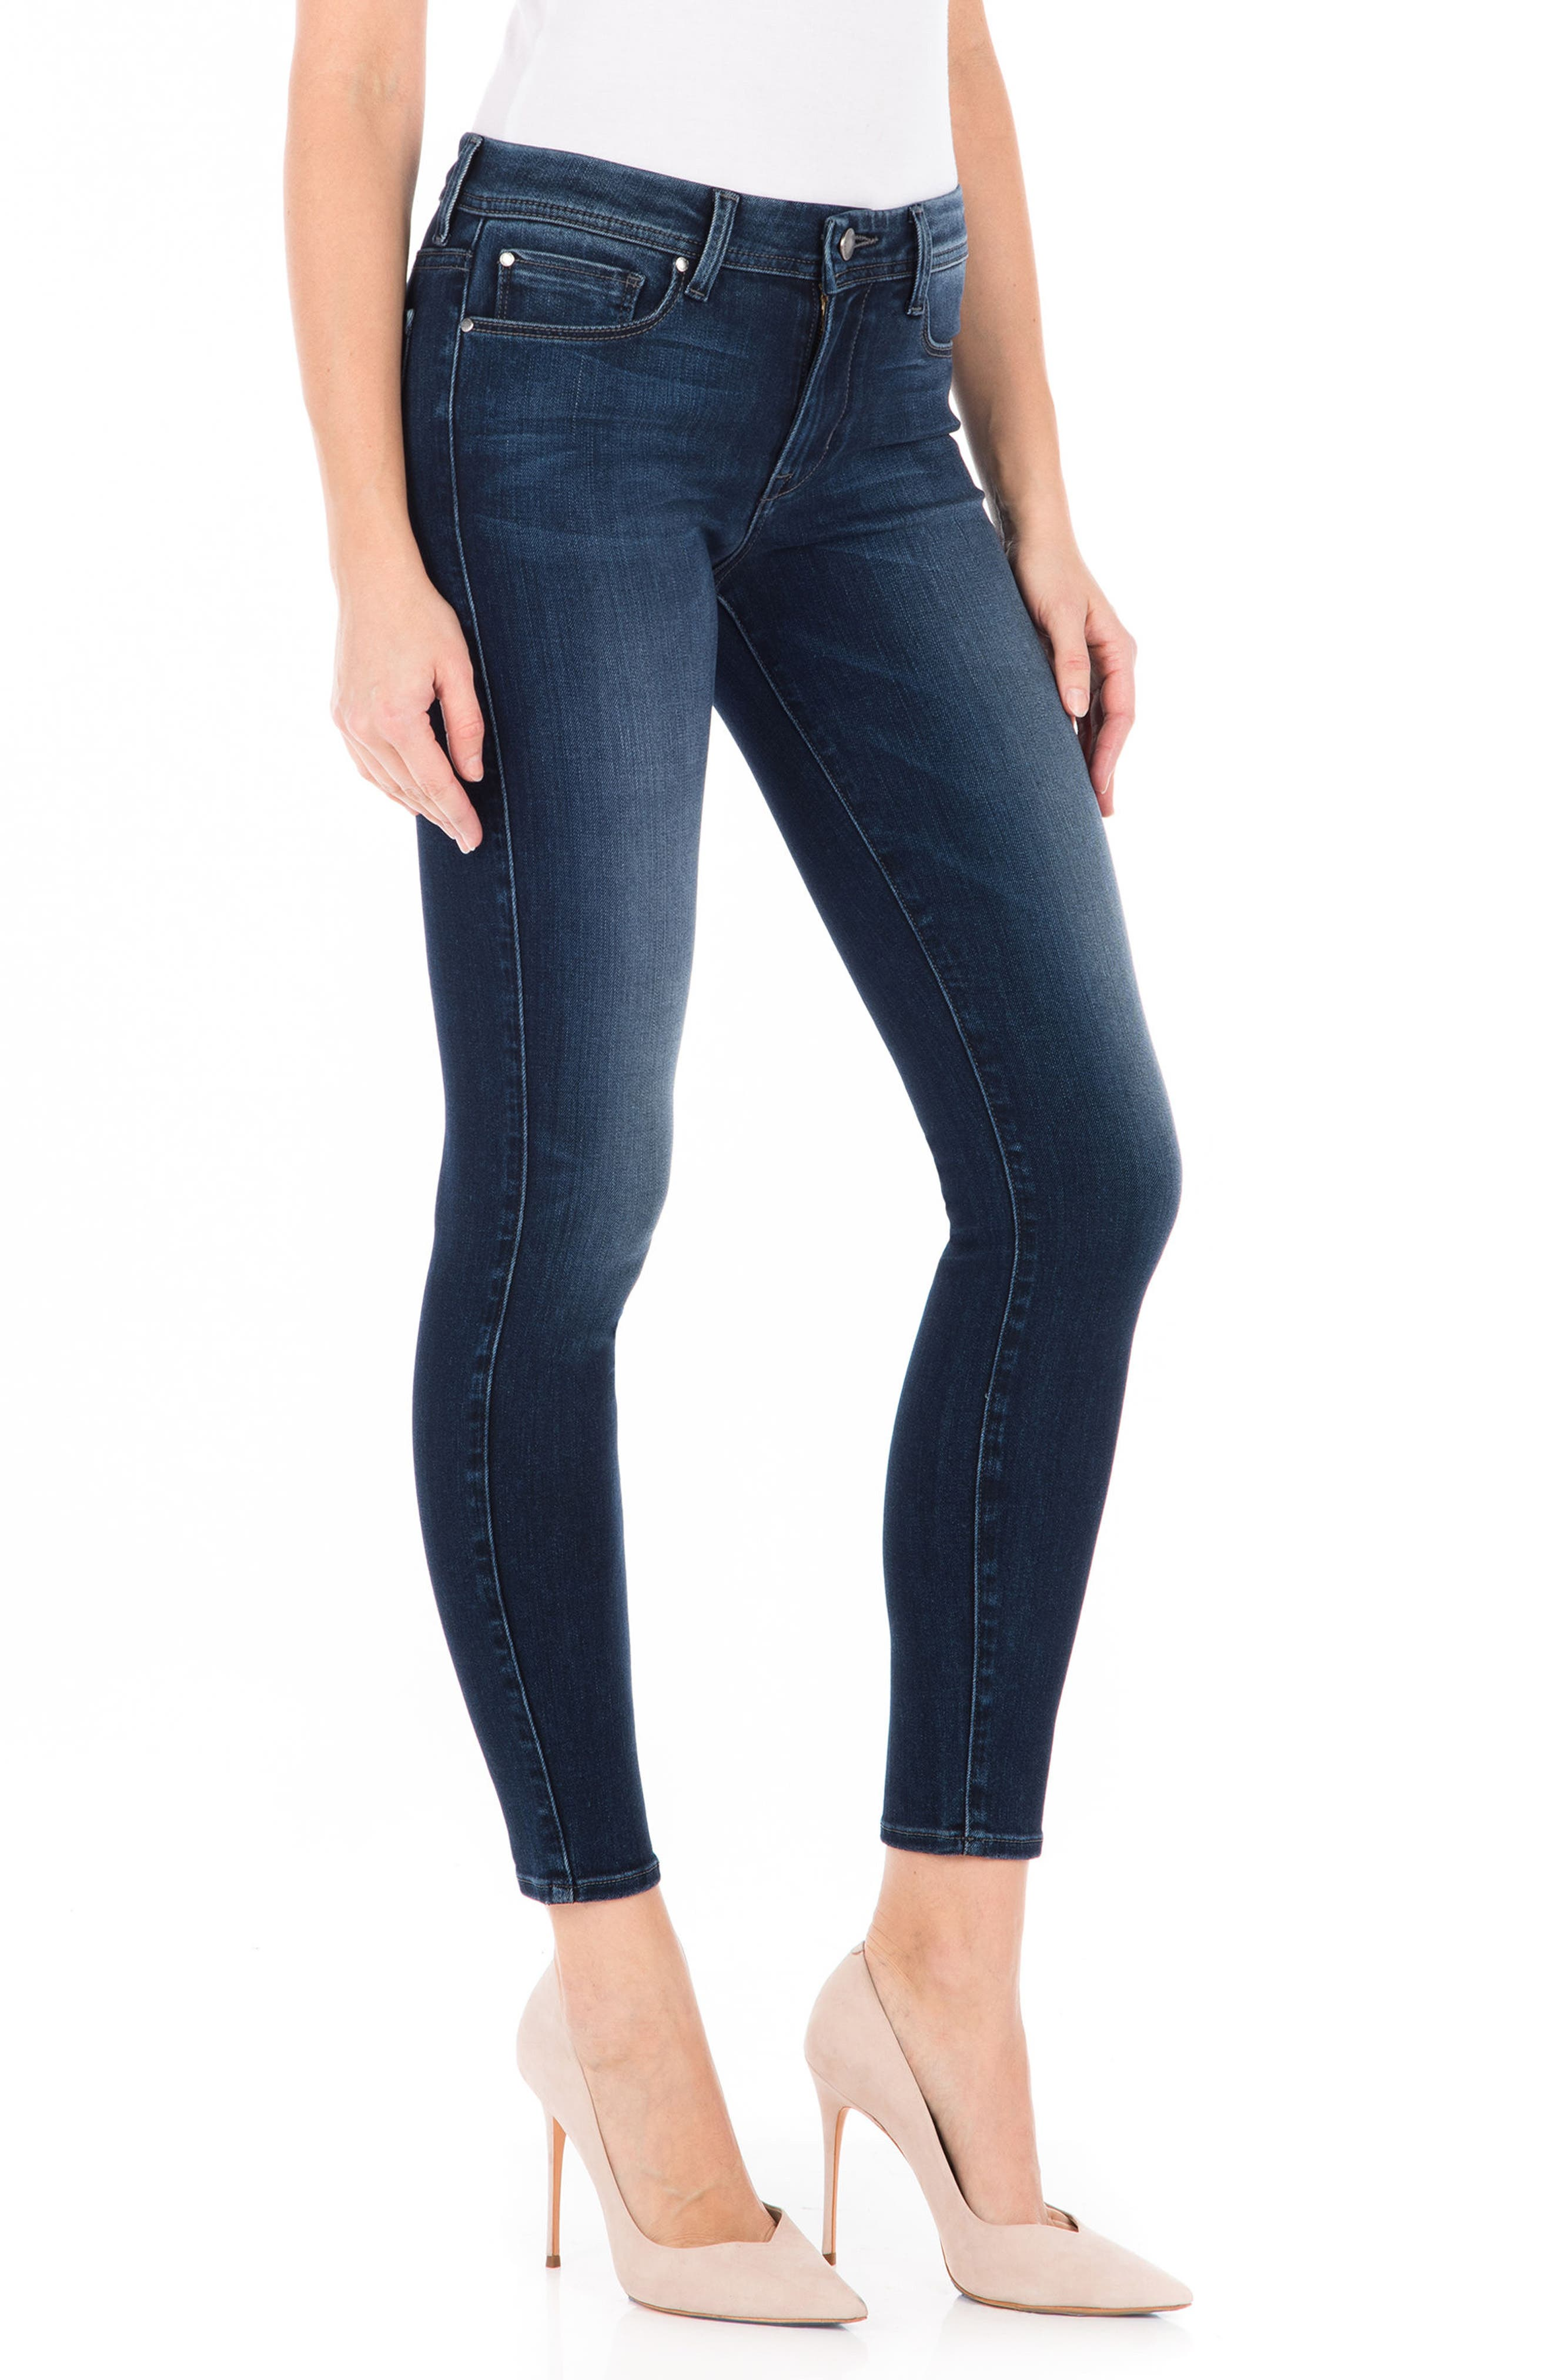 Sola Skinny Jeans,                             Alternate thumbnail 3, color,                             Blue Suede